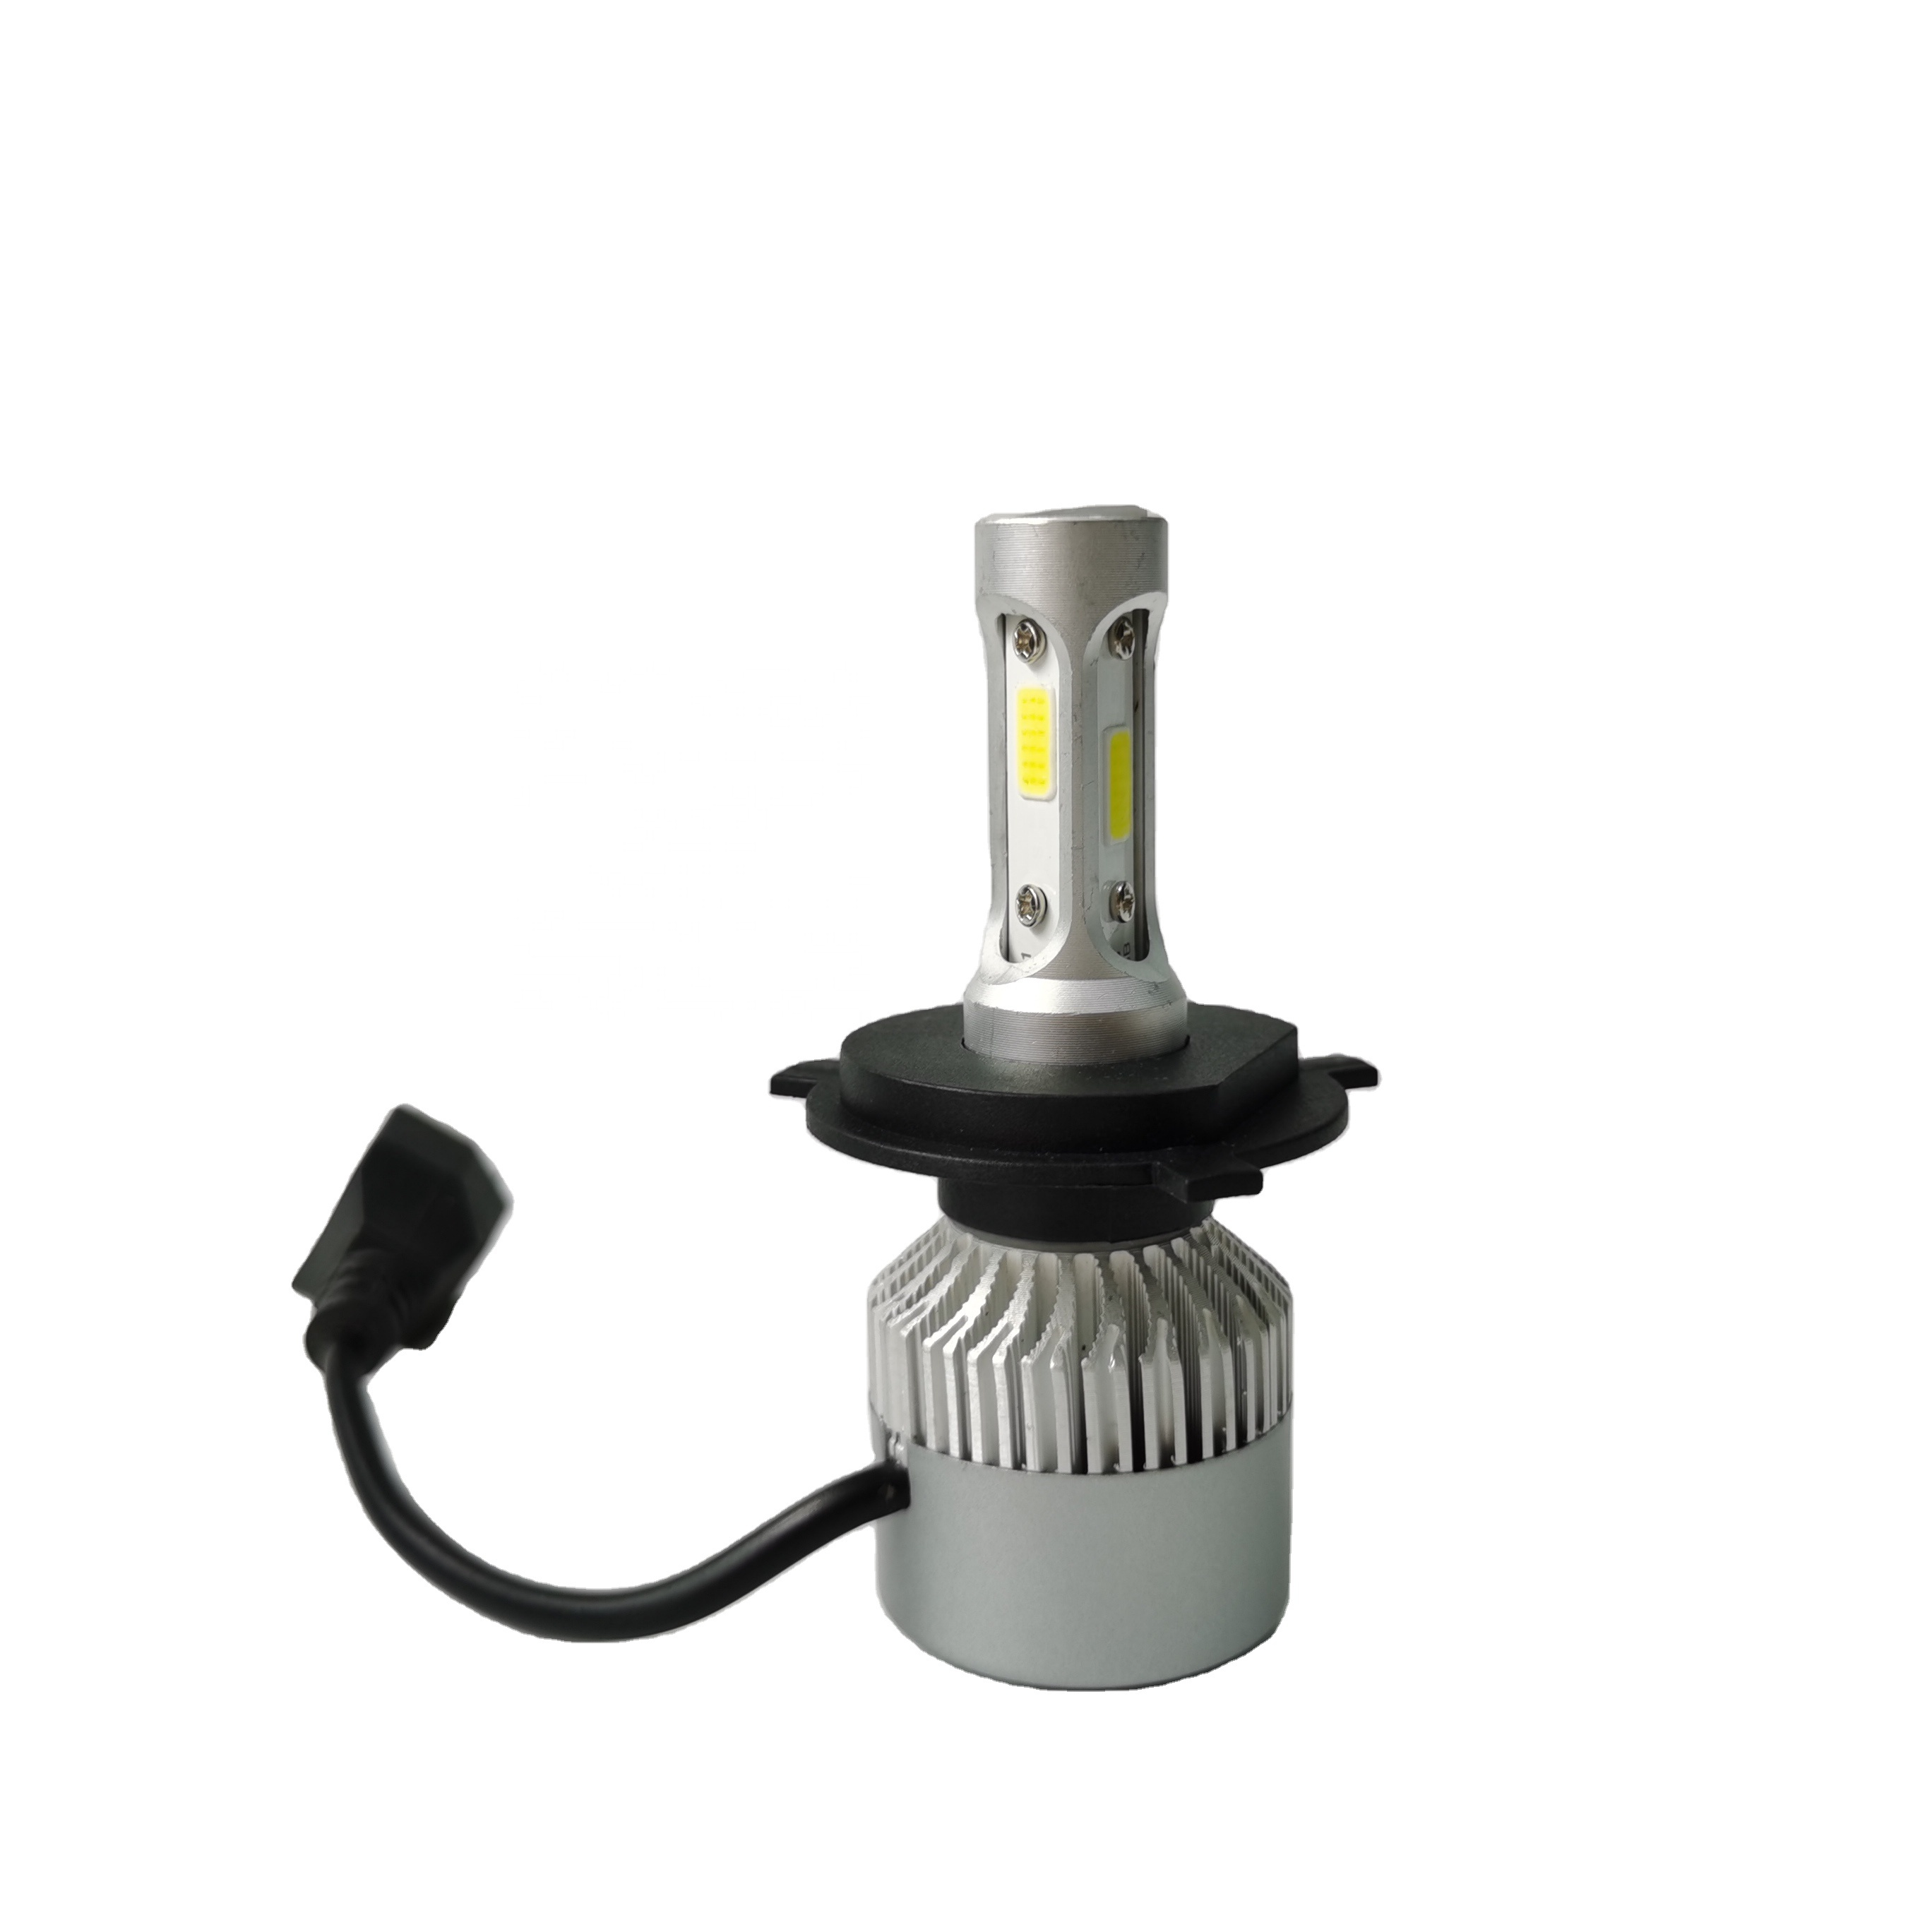 LED Headlight S2 72W 8000LM COB H4 Car <strong>Auto</strong> H1 H3 H8 H9 <strong>H10</strong> H11 9005 9006 H7 bulb led 12v